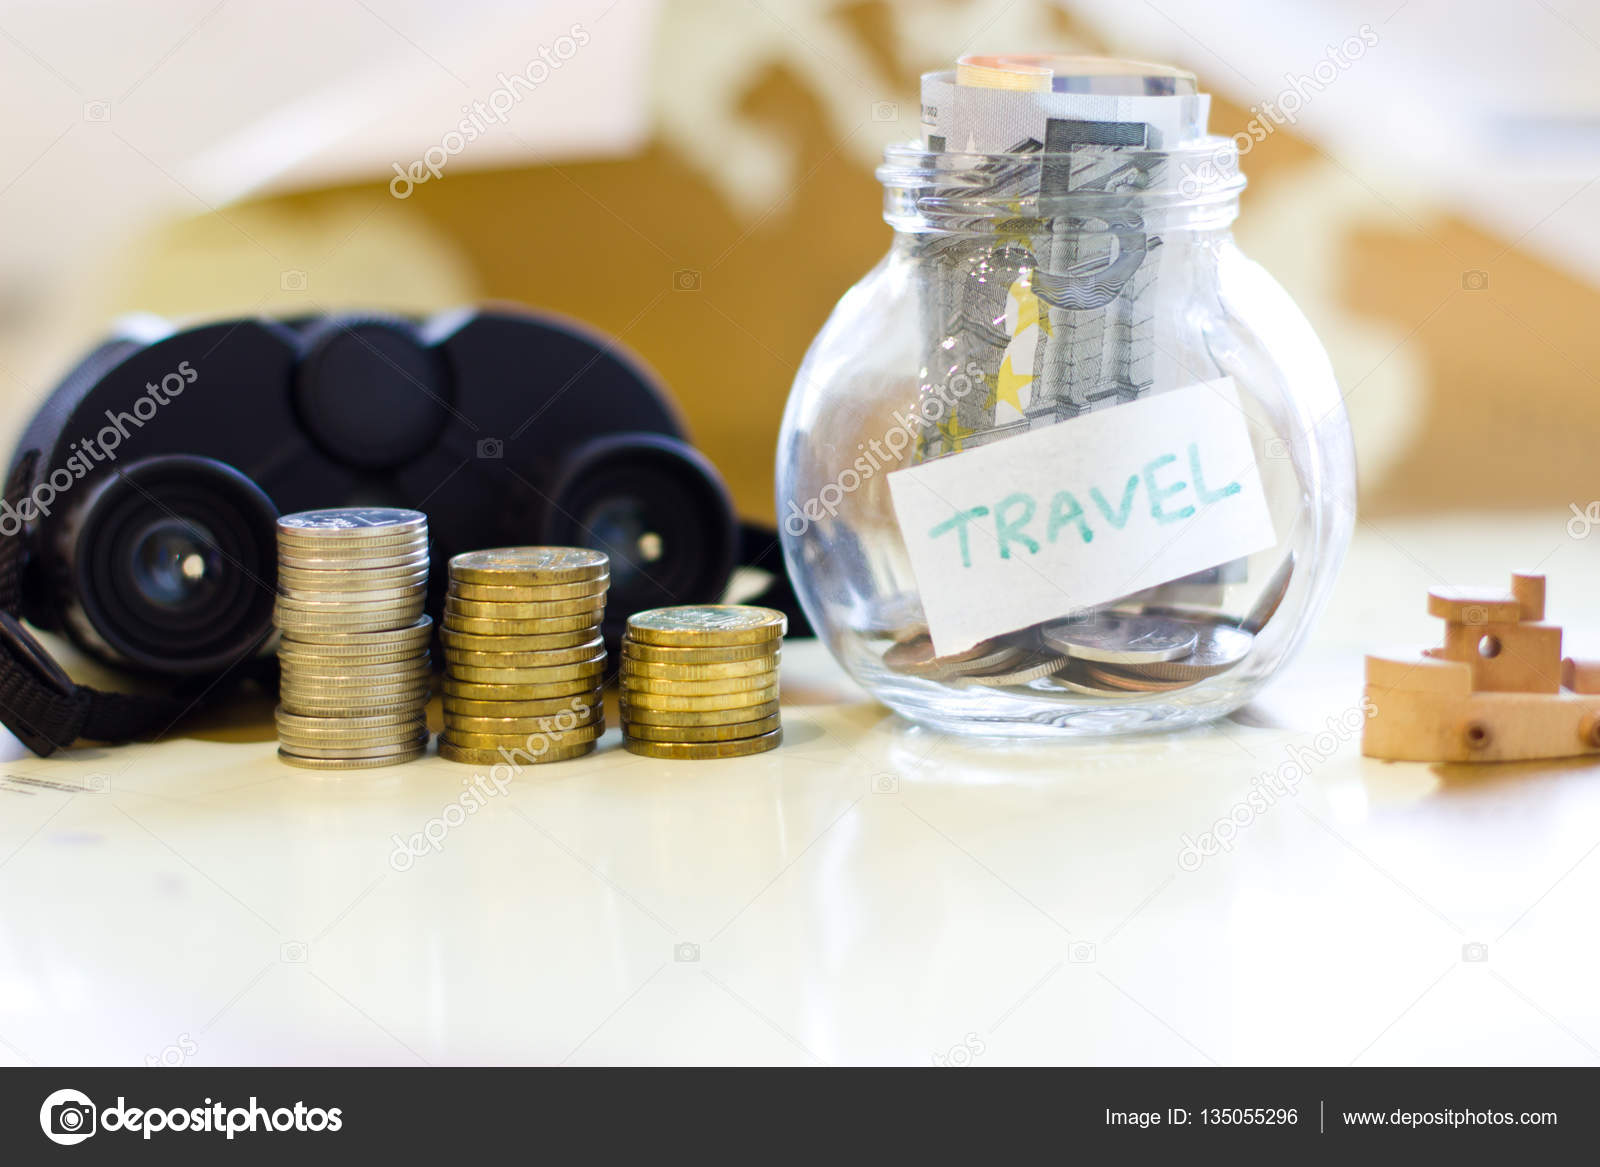 Travel budget vacation money savings in a glass jar on world m travel budget vacation money savings in a glass jar on world map collecting money for travel photo by ferkhova gumiabroncs Gallery